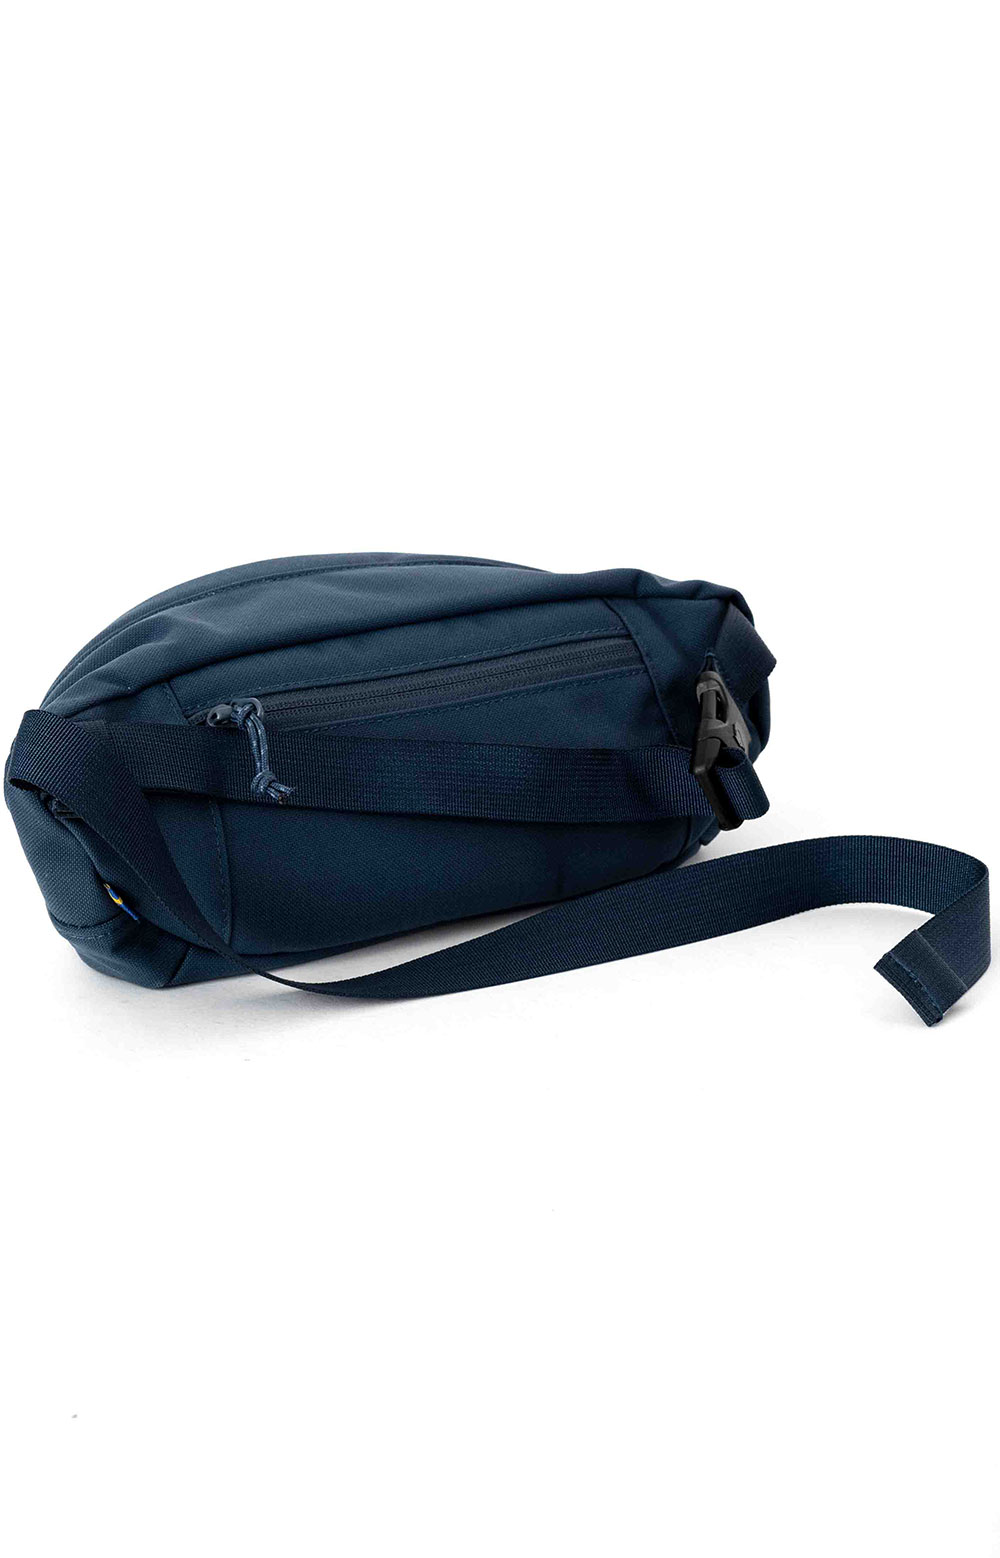 Ulvo Hip Pack Large - Mountain Blue 3